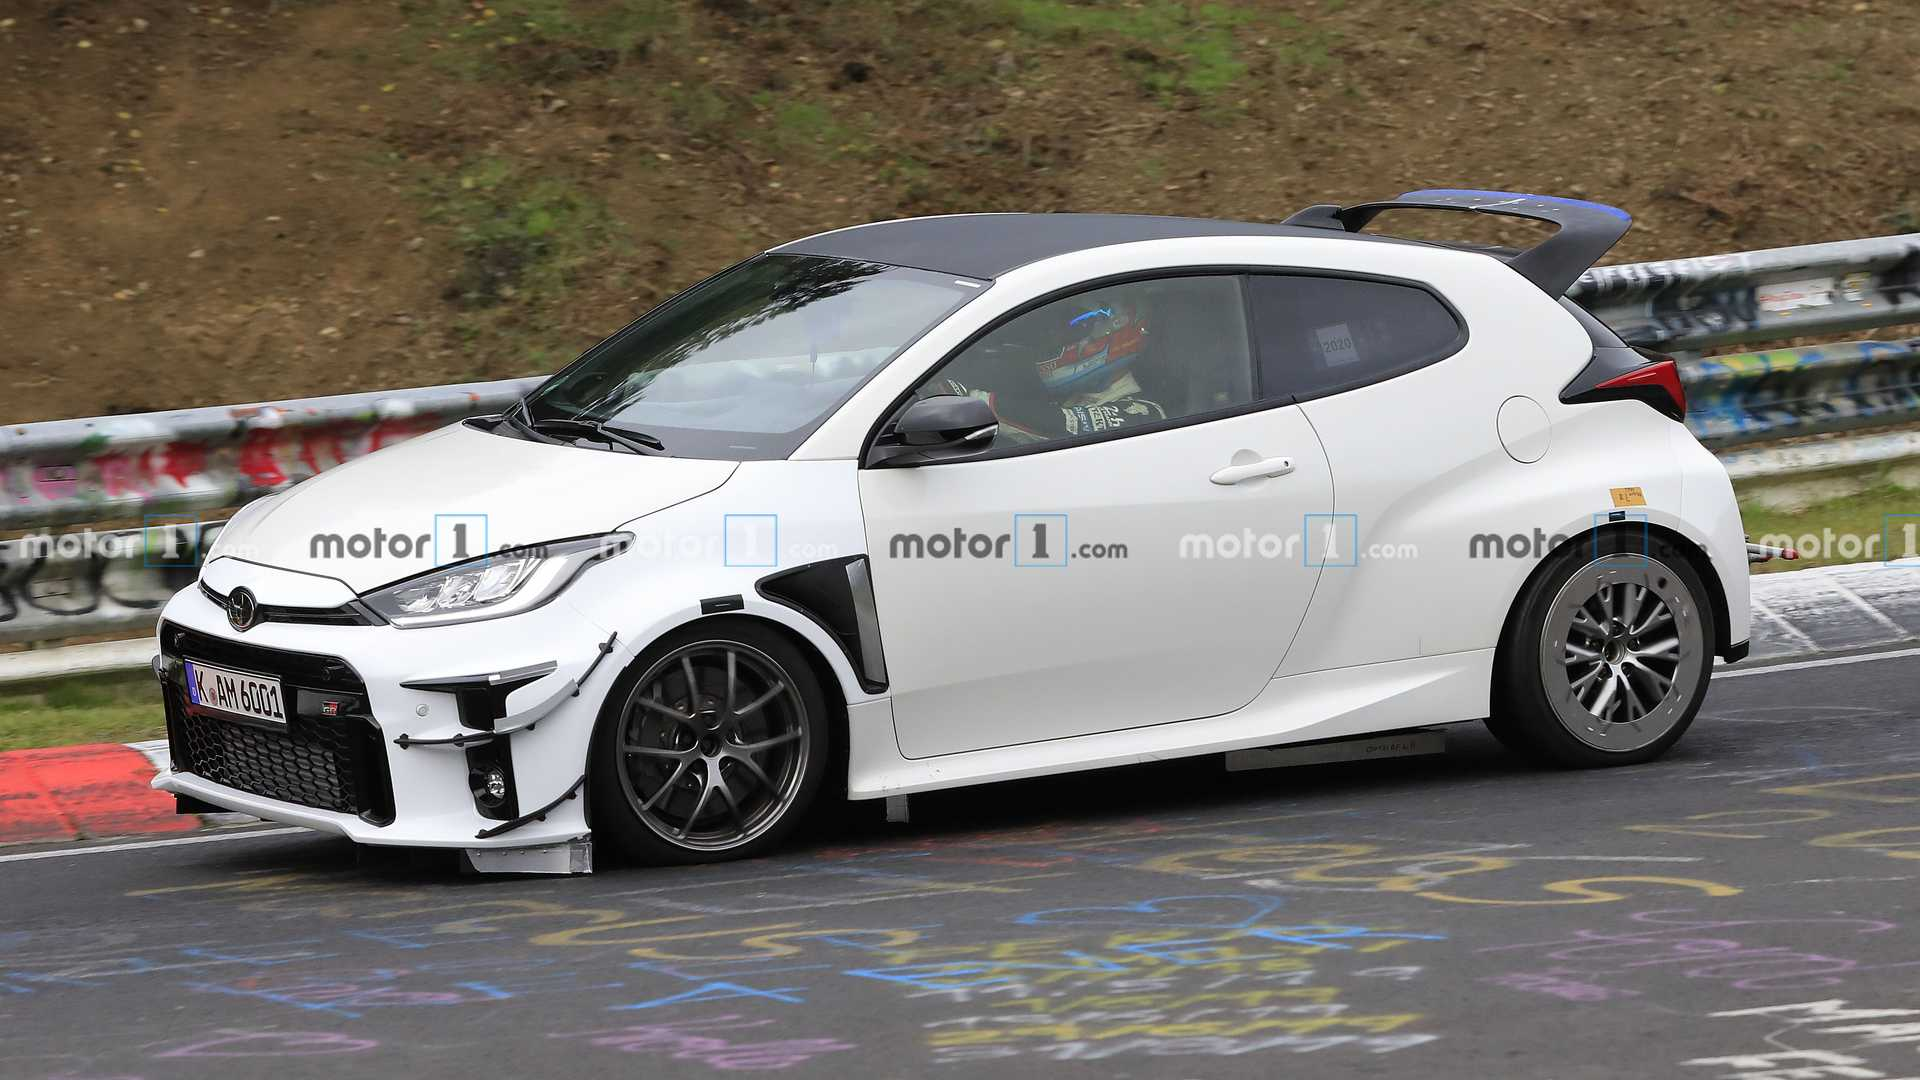 Hardcore Toyota GR Yaris Caught At The Nurburgring, Is It The GRMN?